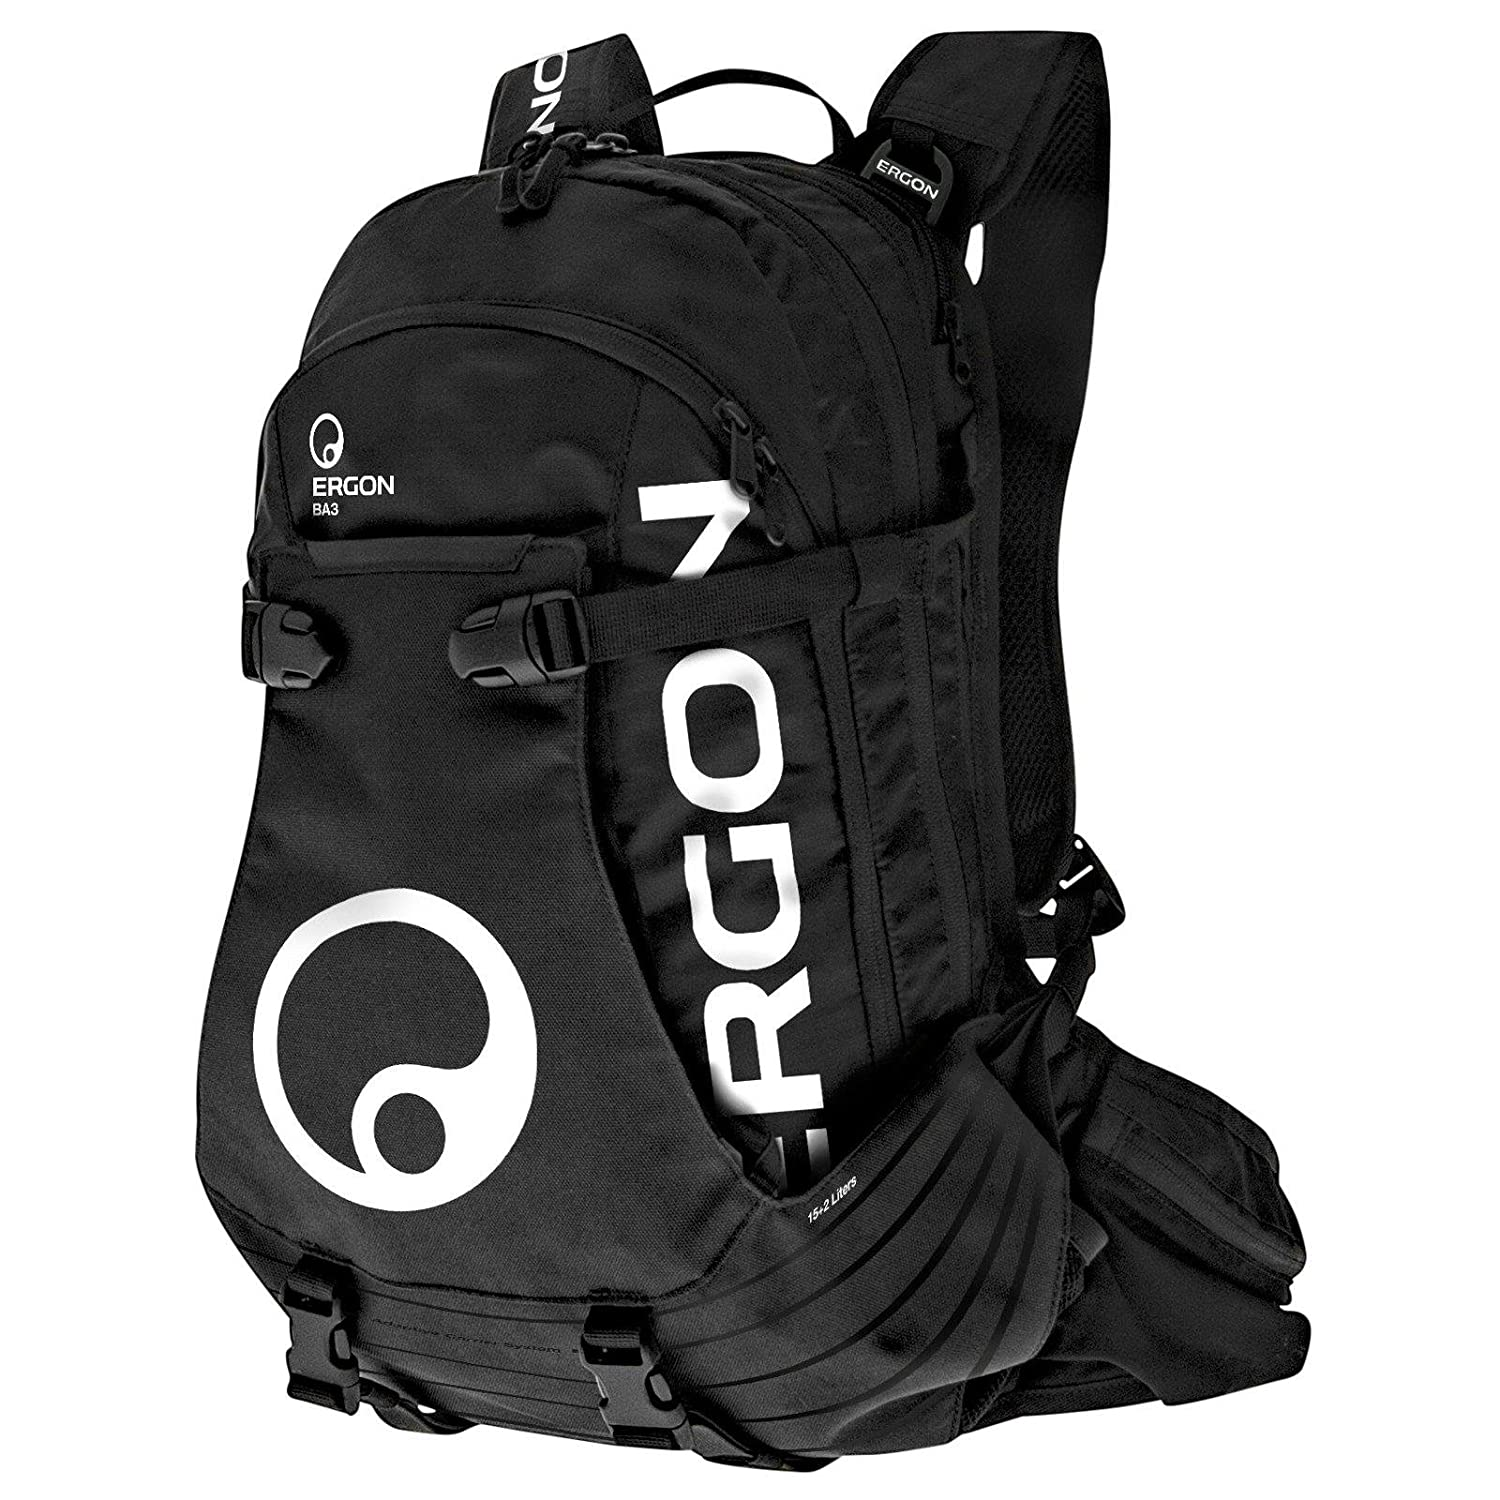 Ergon BA3 Backpack 15+2l black 2019 Rucksack cycling: Amazon